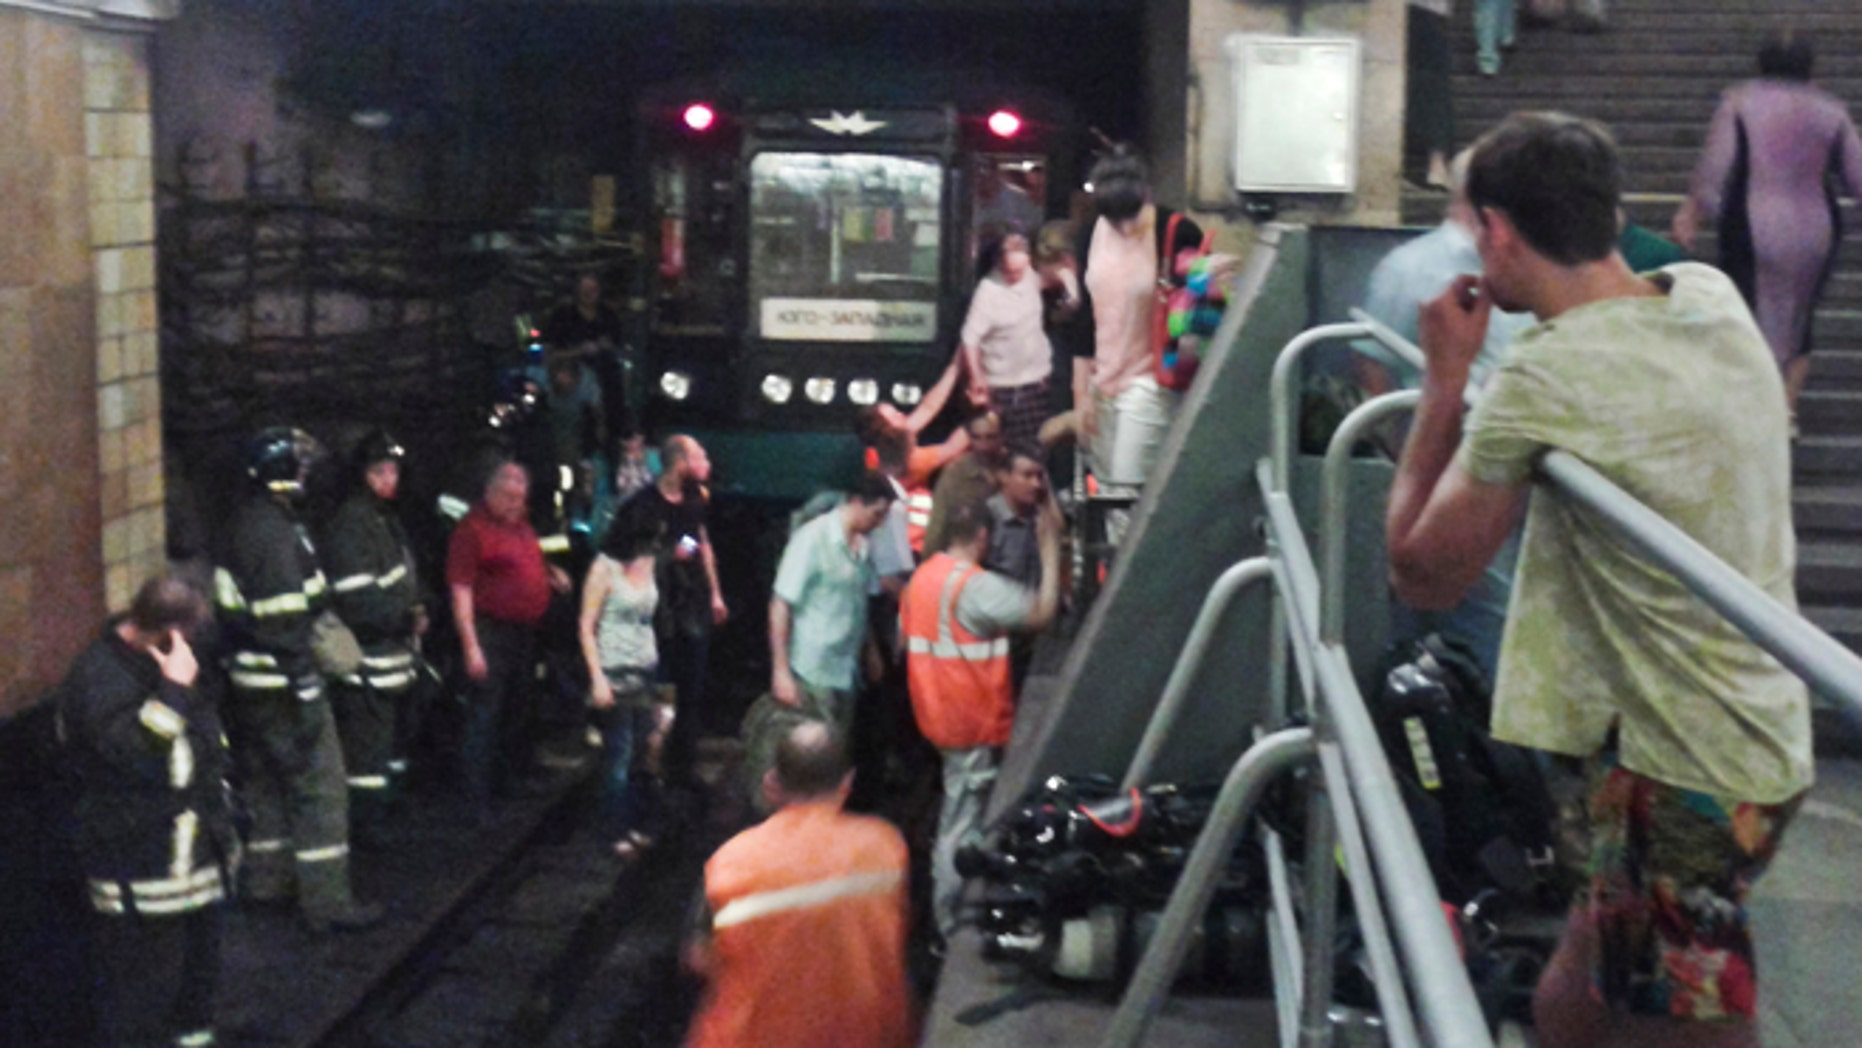 June 5, 2013: In this image made by a mobile phone camera, people leave a subway station in downtown Moscow.. A rush-hour fire in Moscows subway injured dozens of people, forced the evacuation of thousands of commuters and closed parts of the network on Wednesday, authorities said.